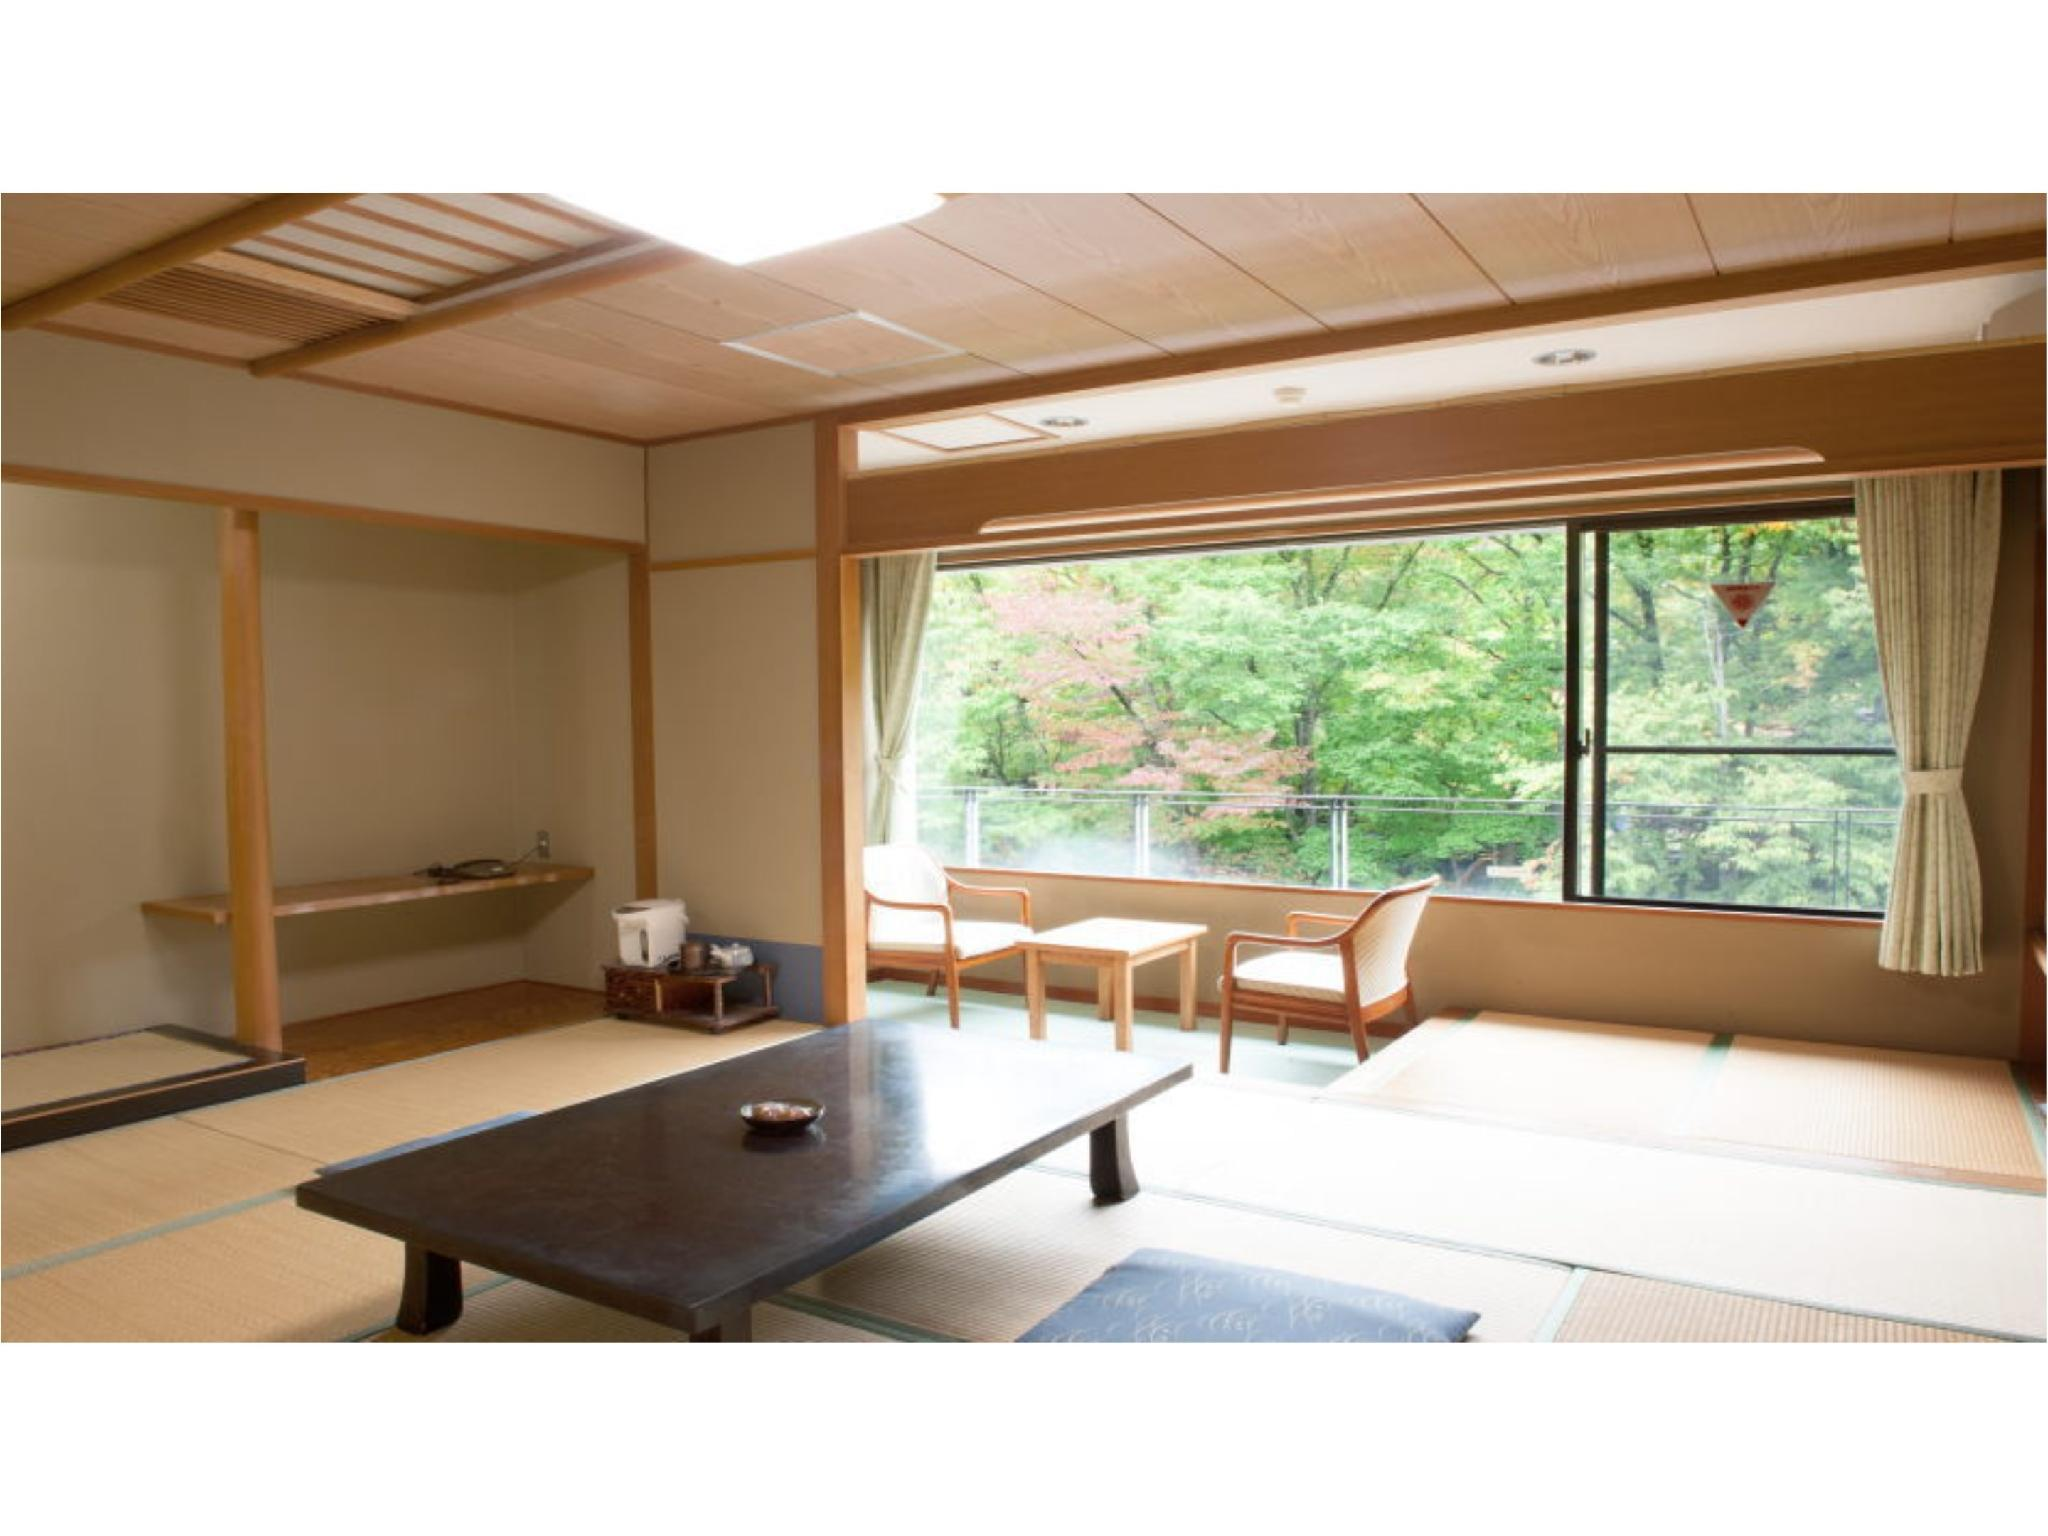 Japanese-style Room or Bedroom *Allocated on arrival